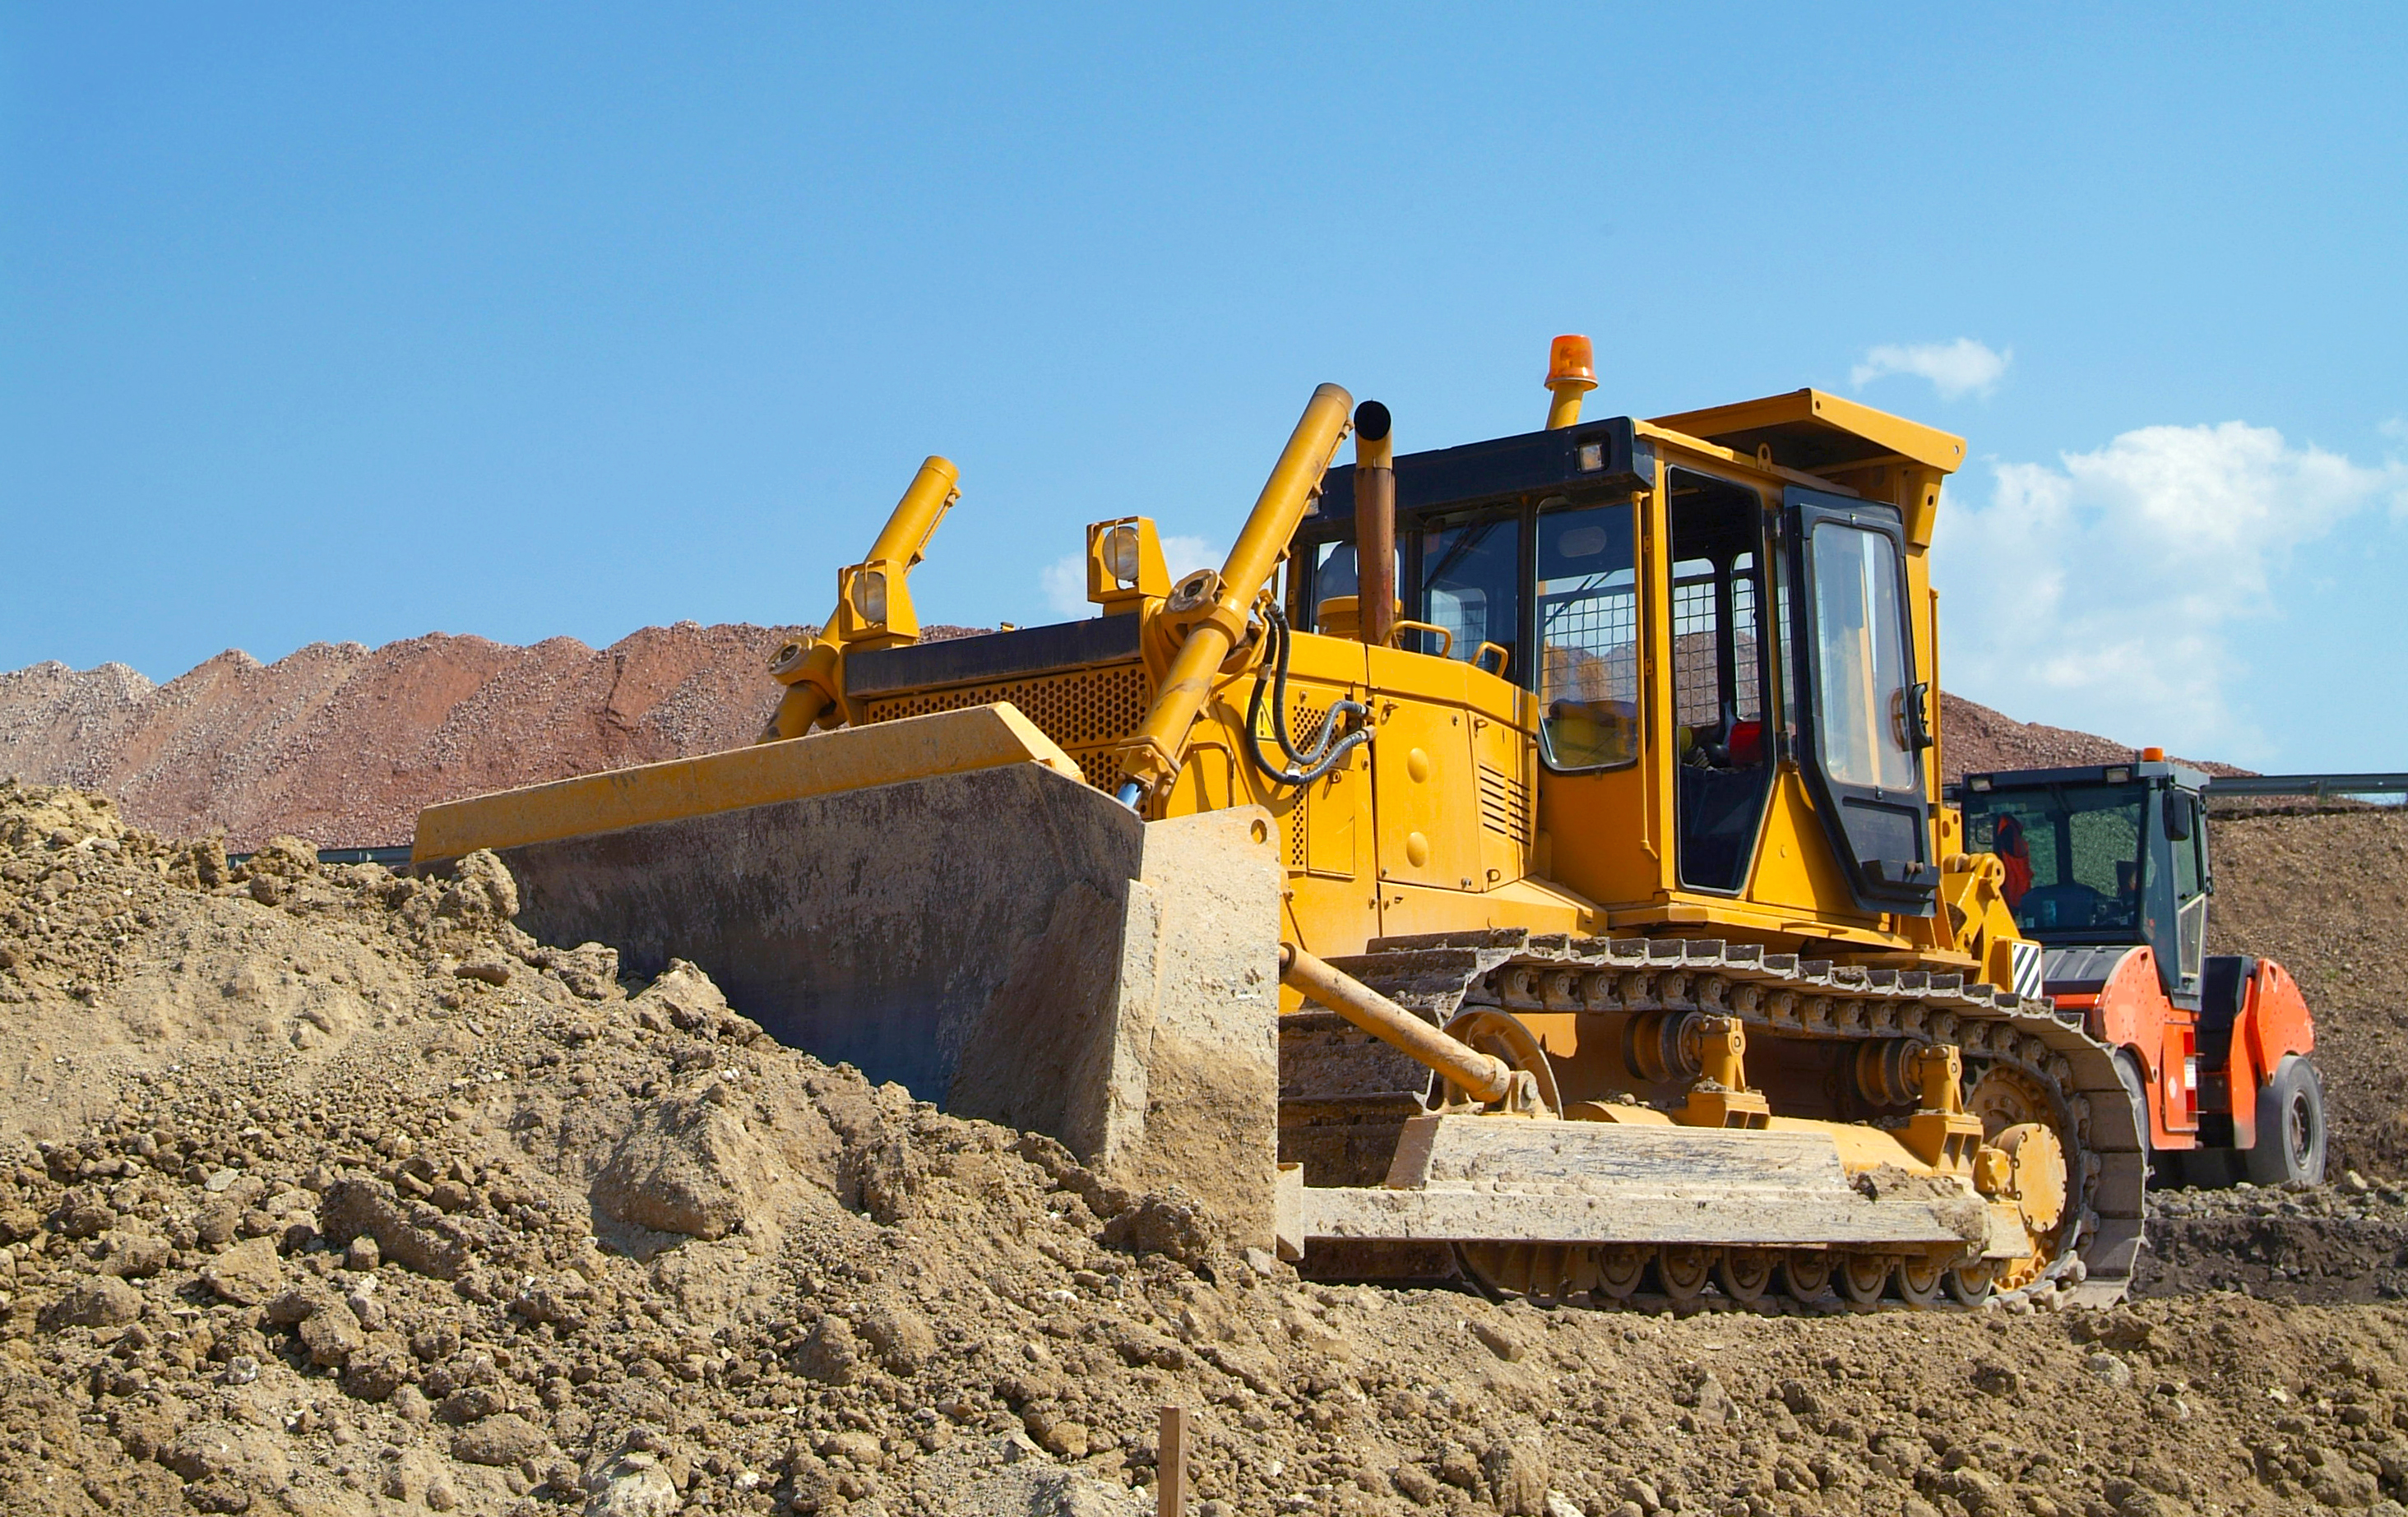 How to Troubleshoot the Shuttle Shift on a Case 580 Backhoe | Career